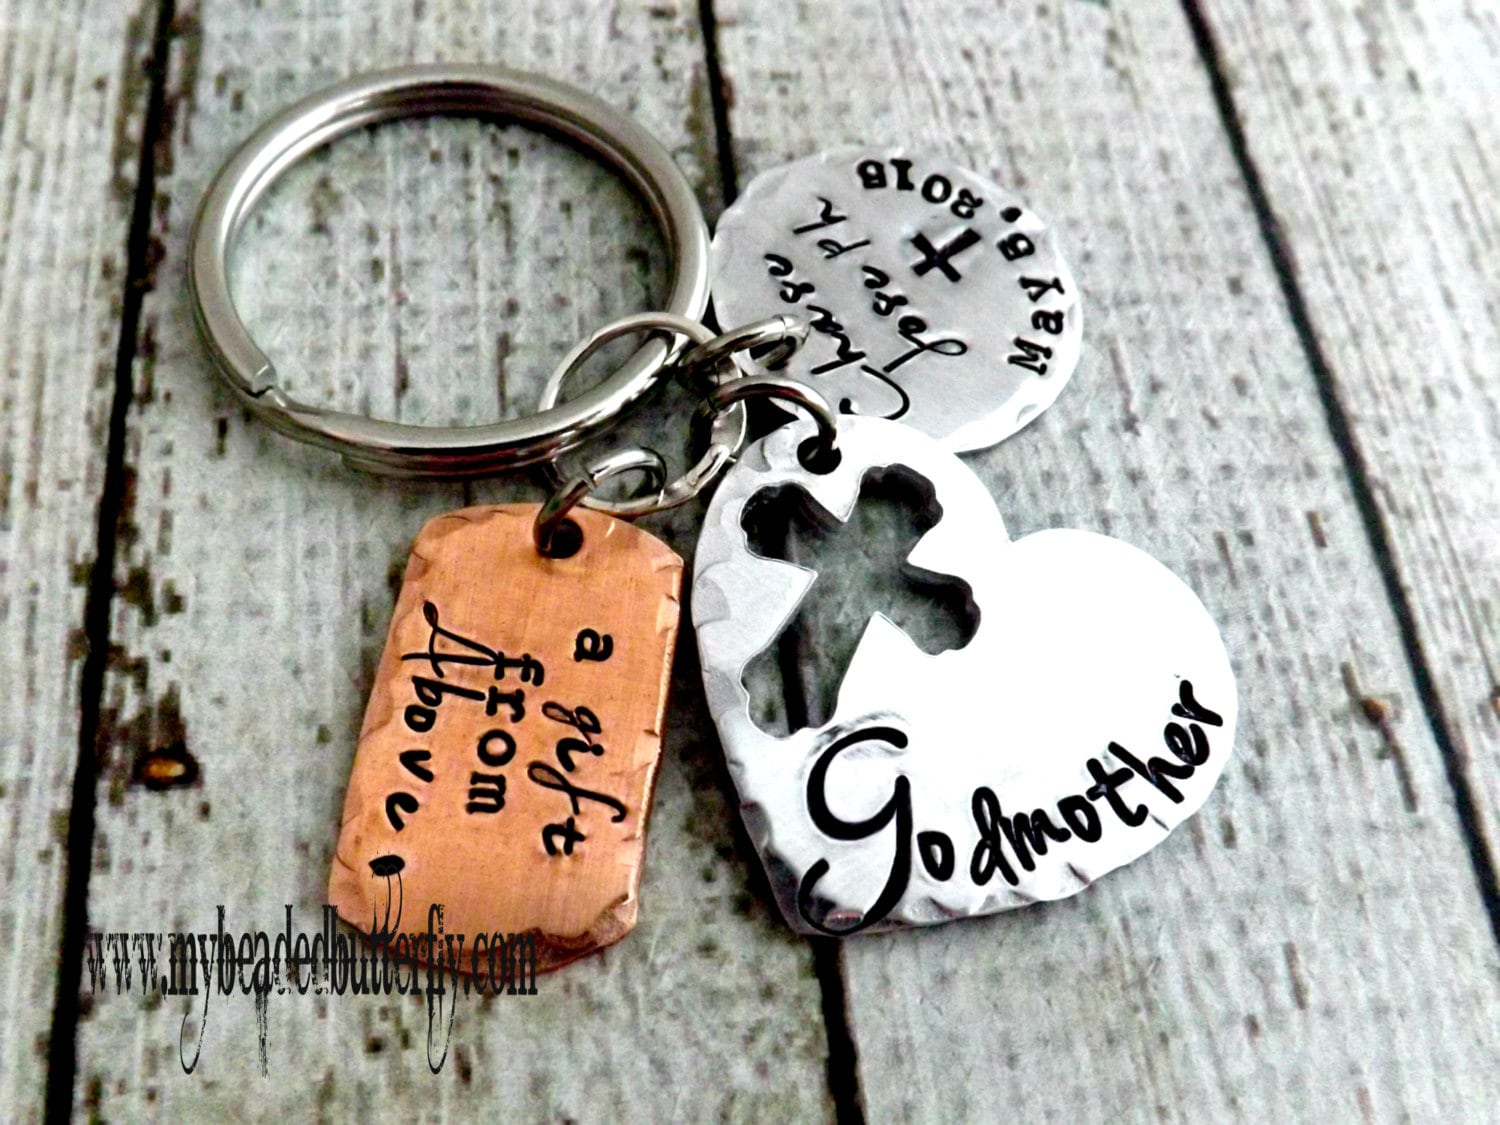 Godparent Keychain Gift For Godparents Gift For: Godparent Gift-godparent Key Chain-godmother